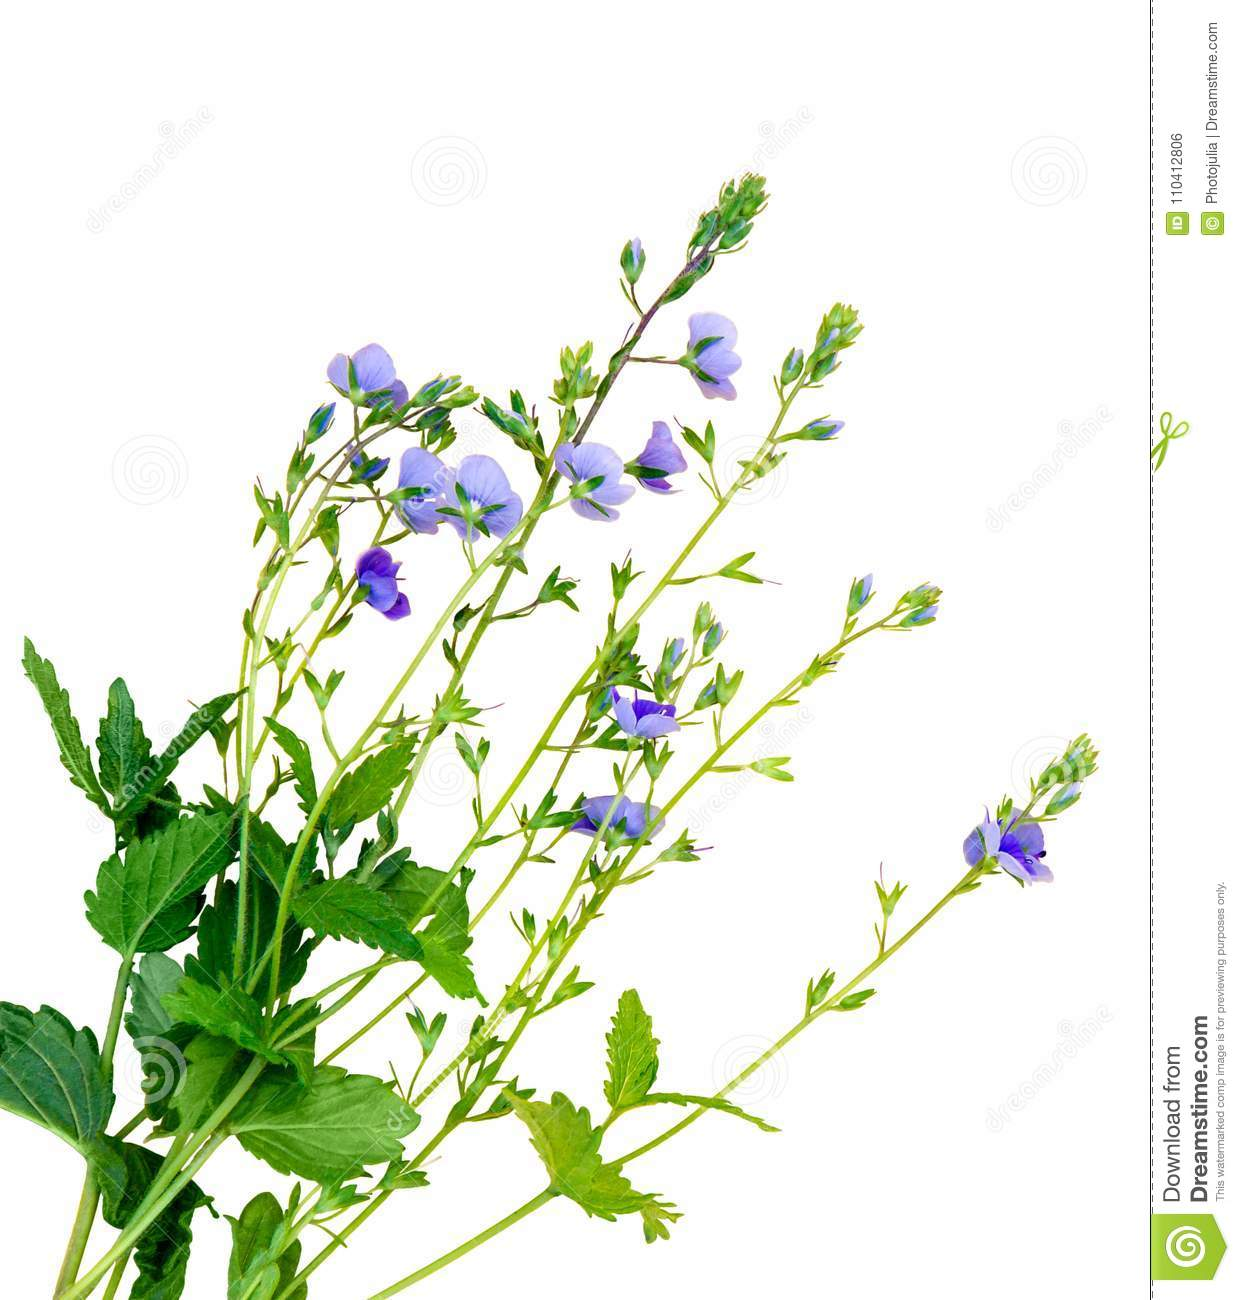 Isolated Small Purple Flowers The Name Of The Flower Is Veronic